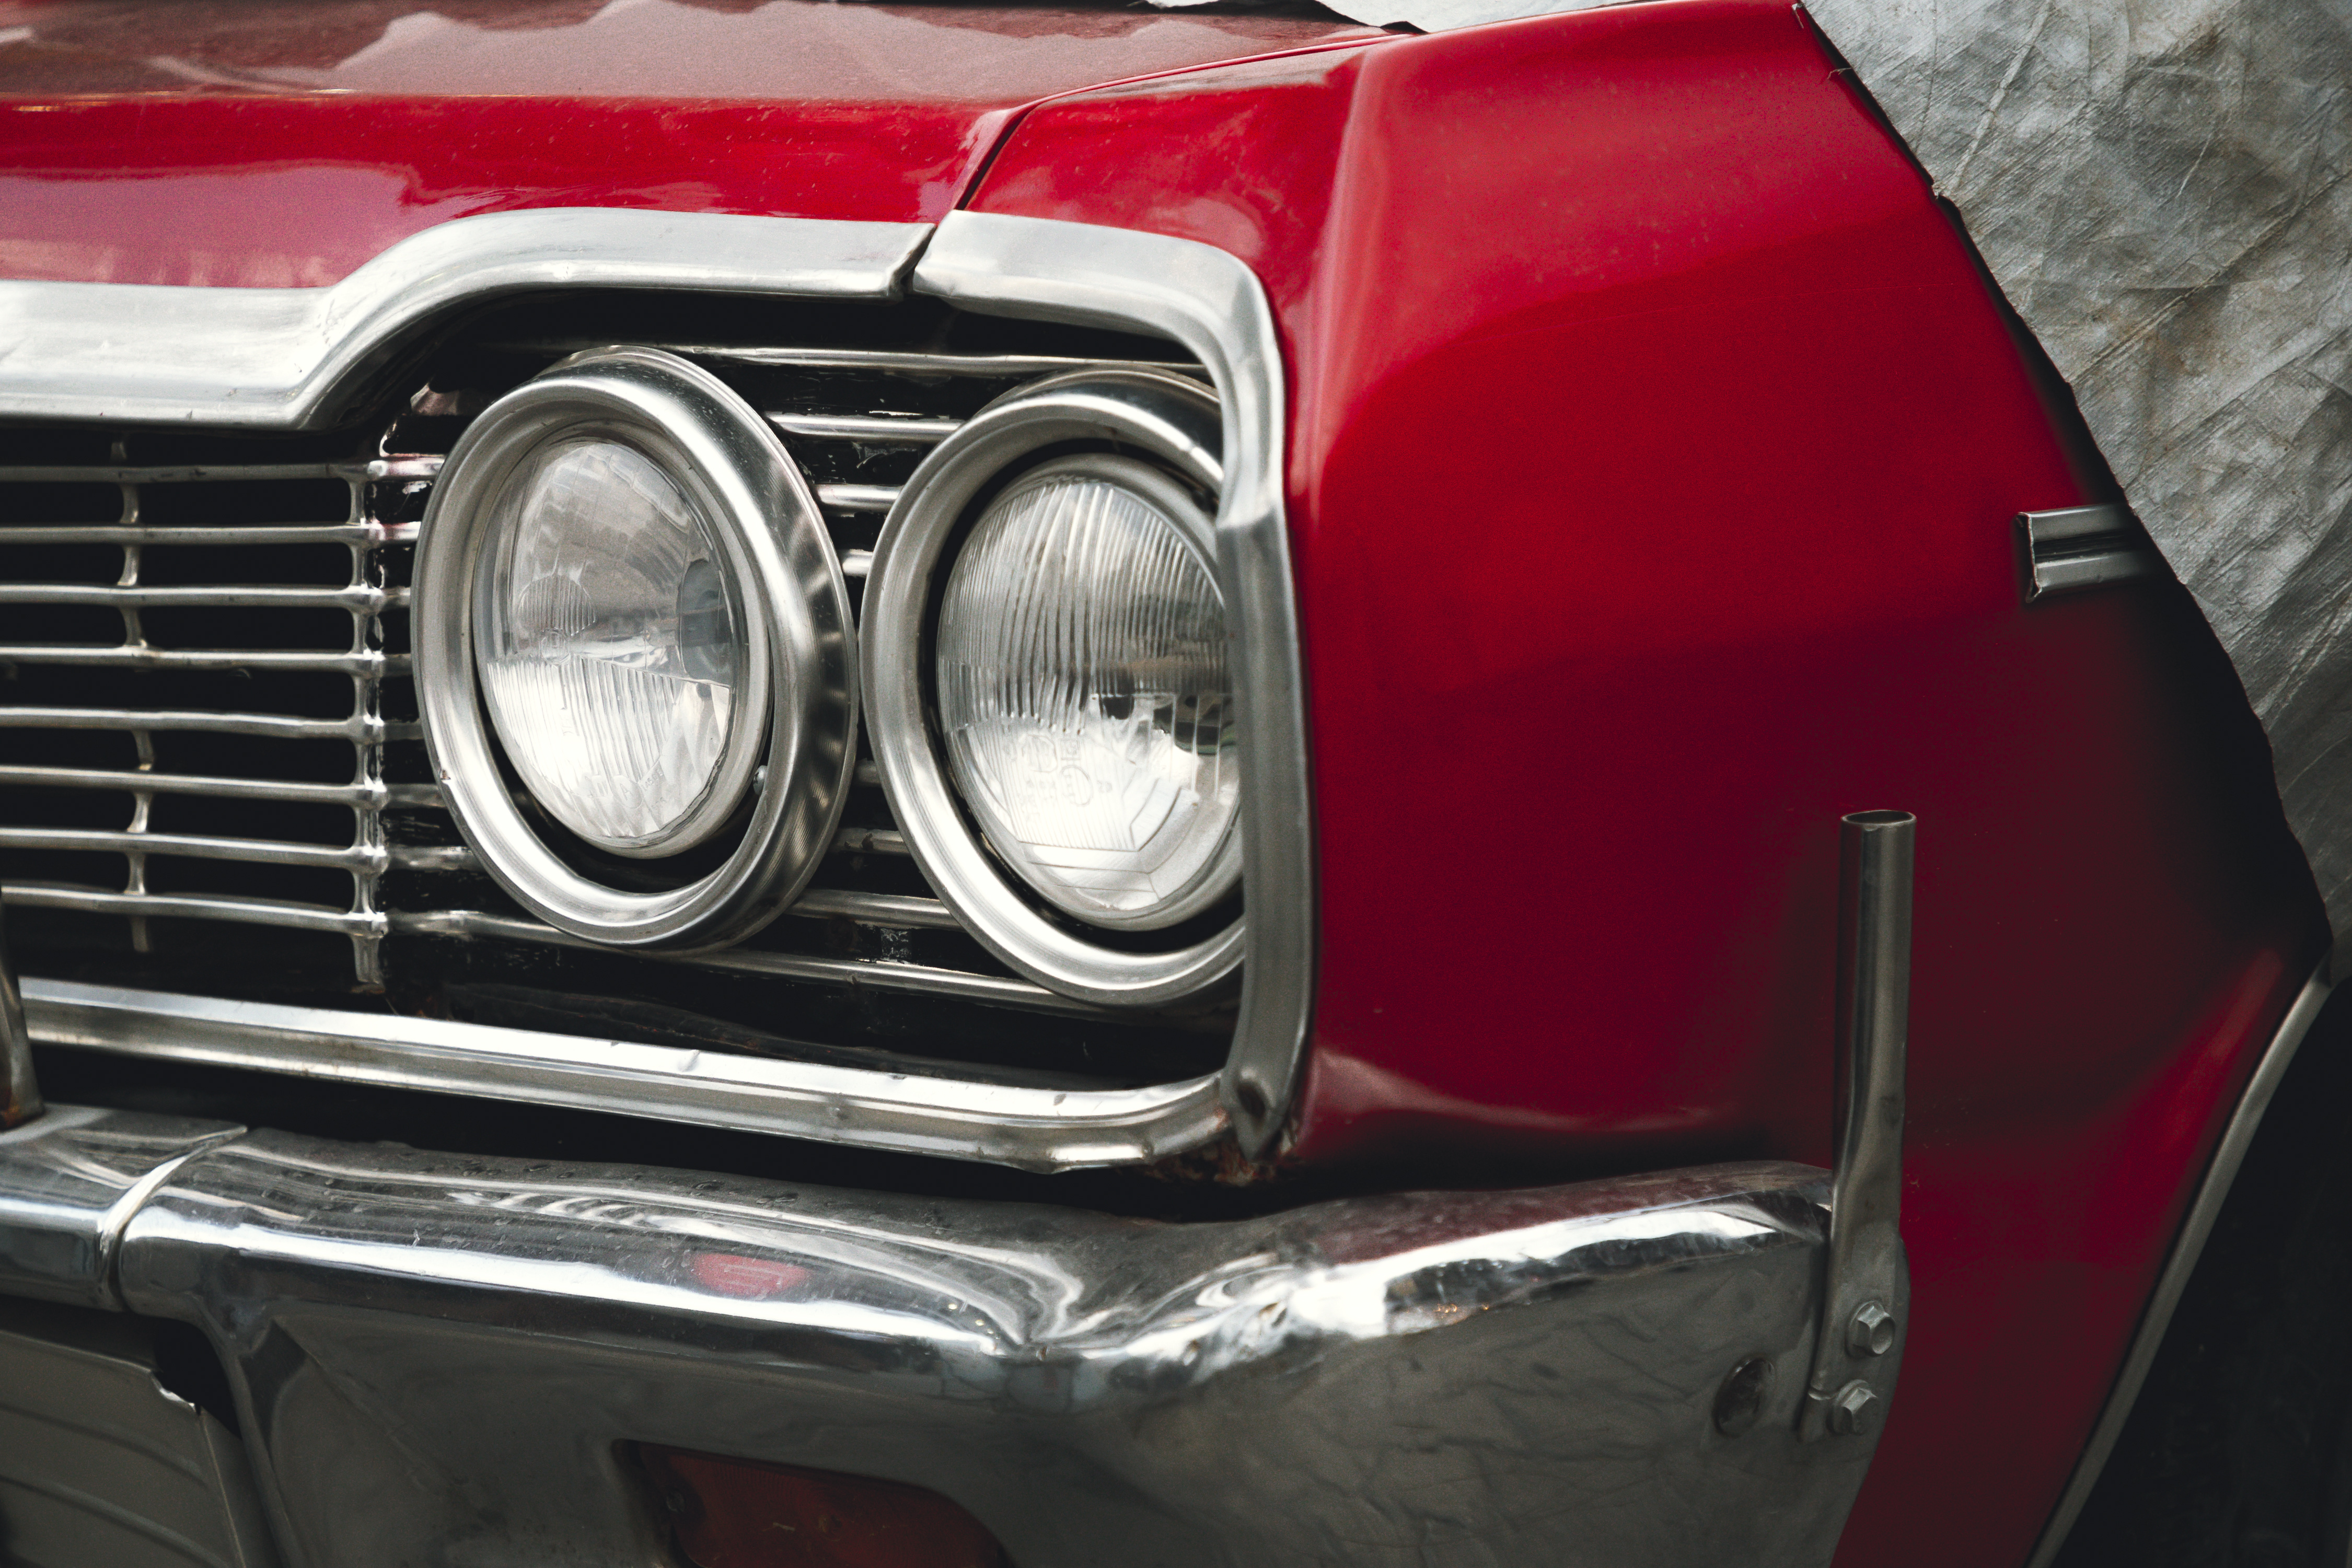 10 things to check before bringing your classic car out of storage